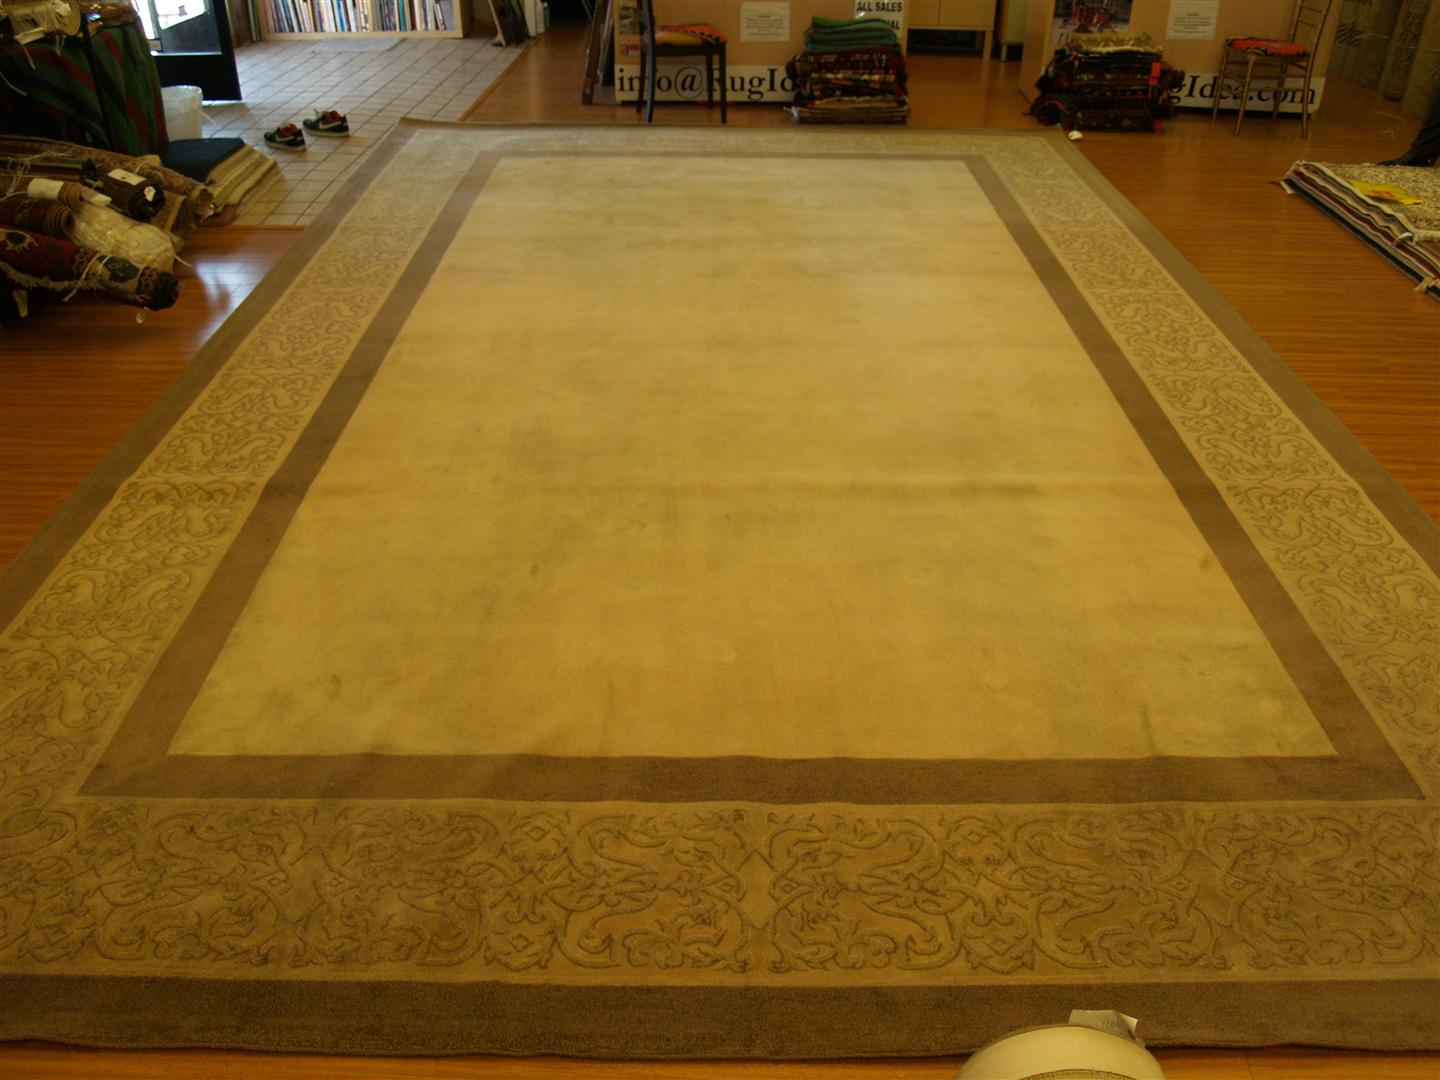 Rug Master: Large Area Rugs - Deep Cleaning